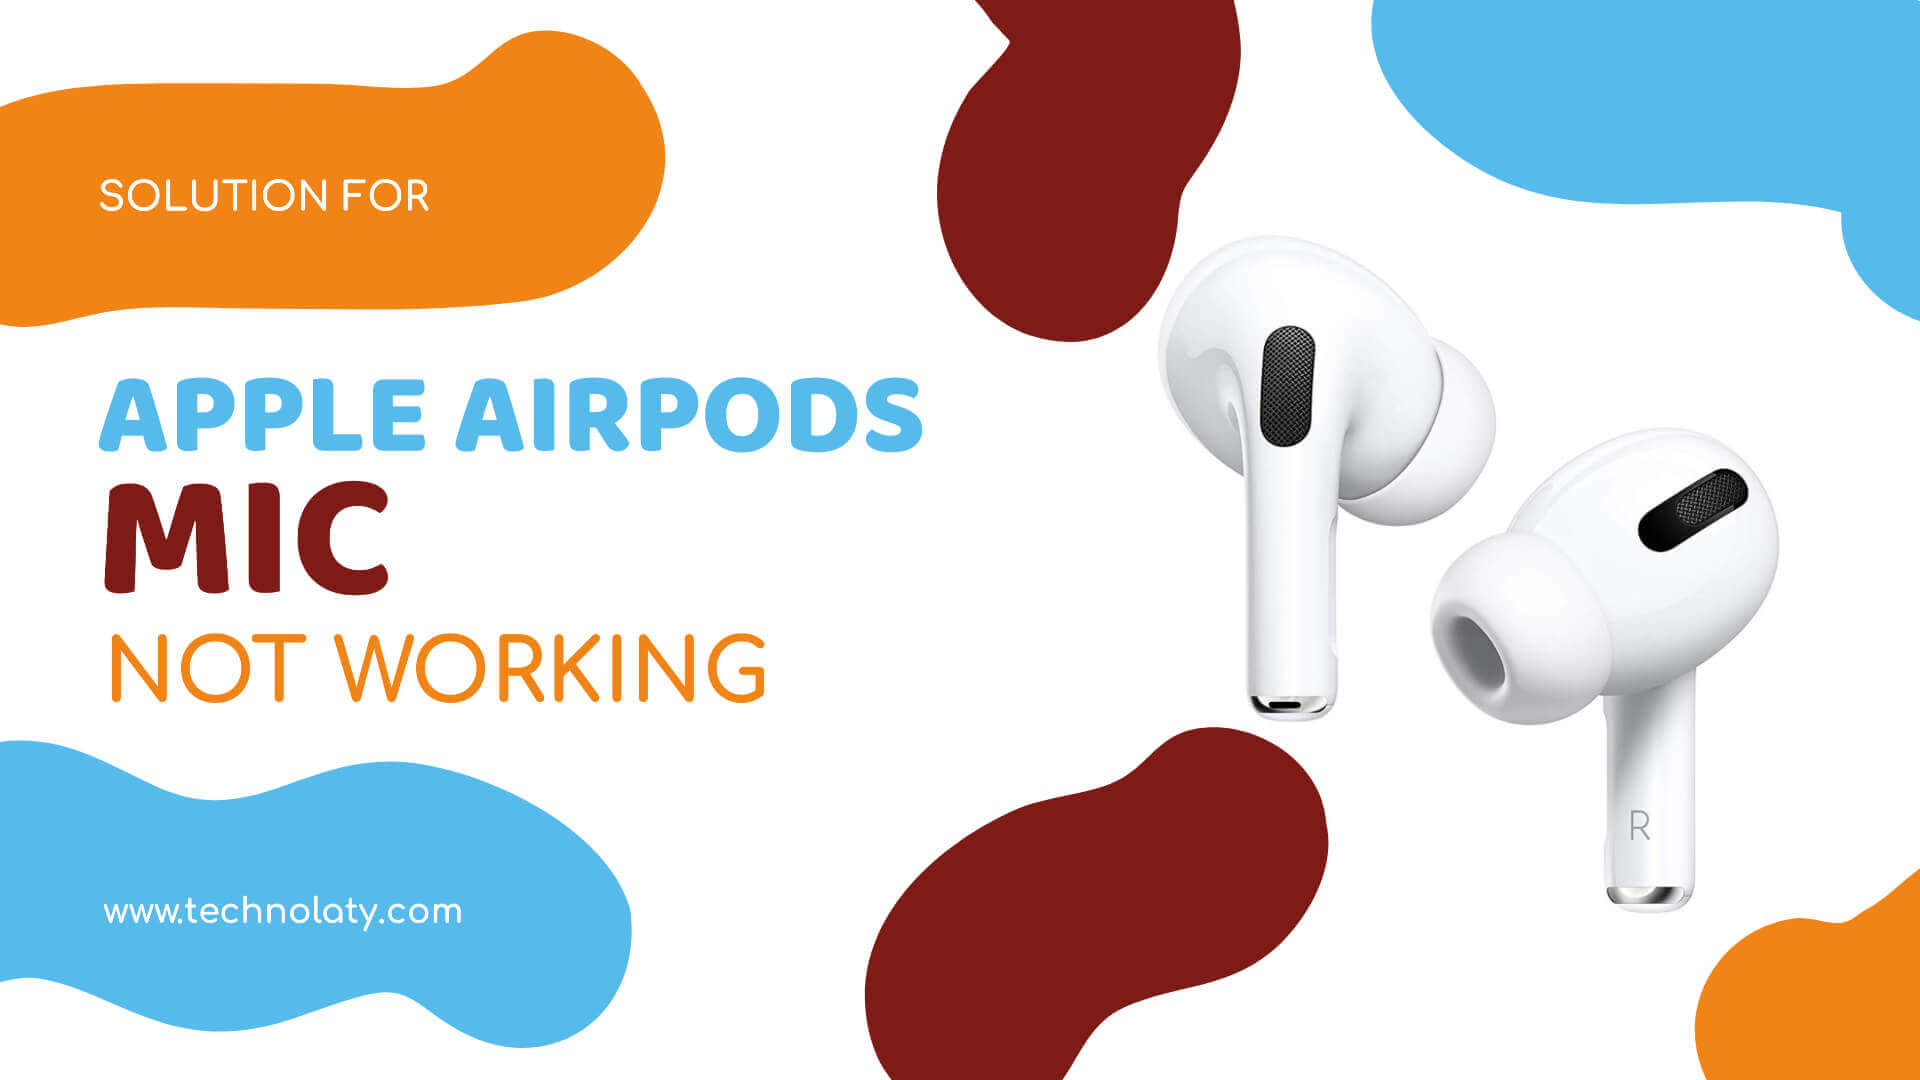 Solution To Apple Airpods Mic Not Working